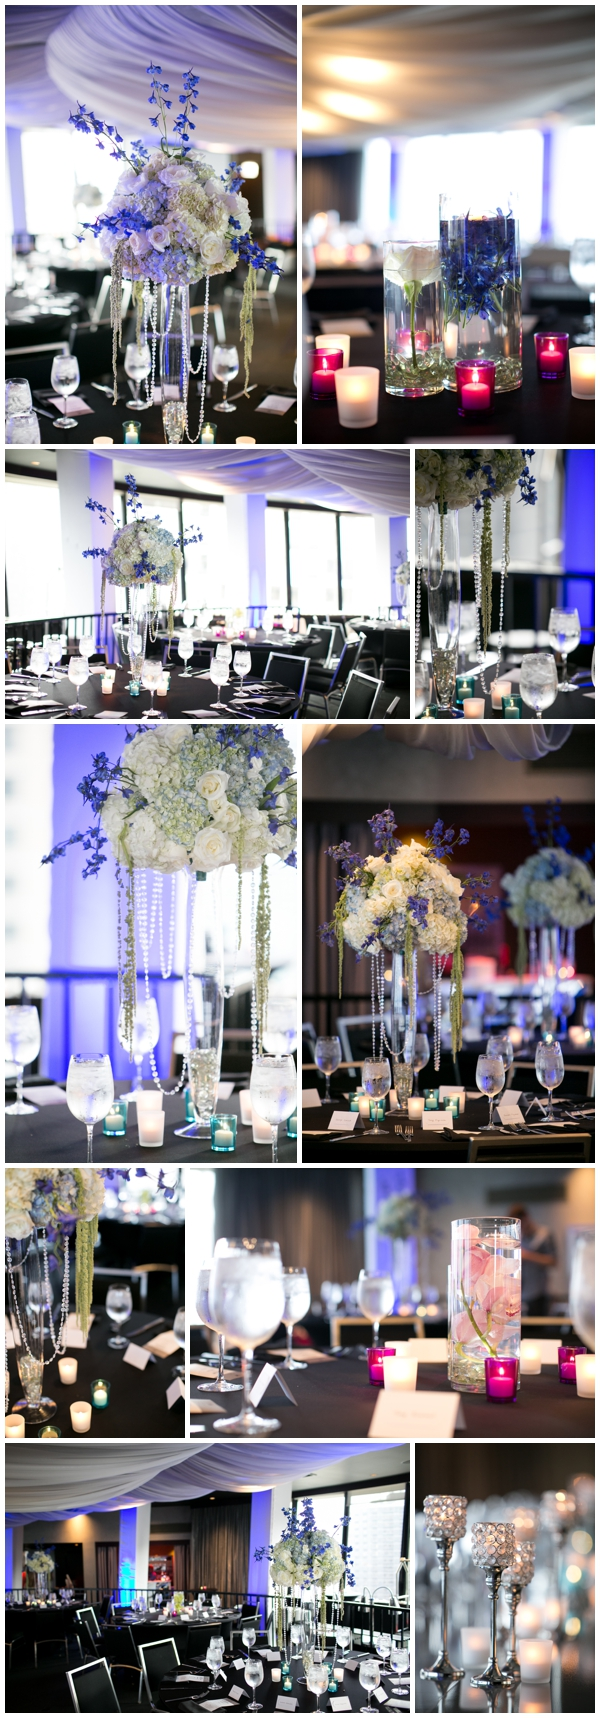 Wedding-photography-w hotel-chicago-lake shore drive_0032